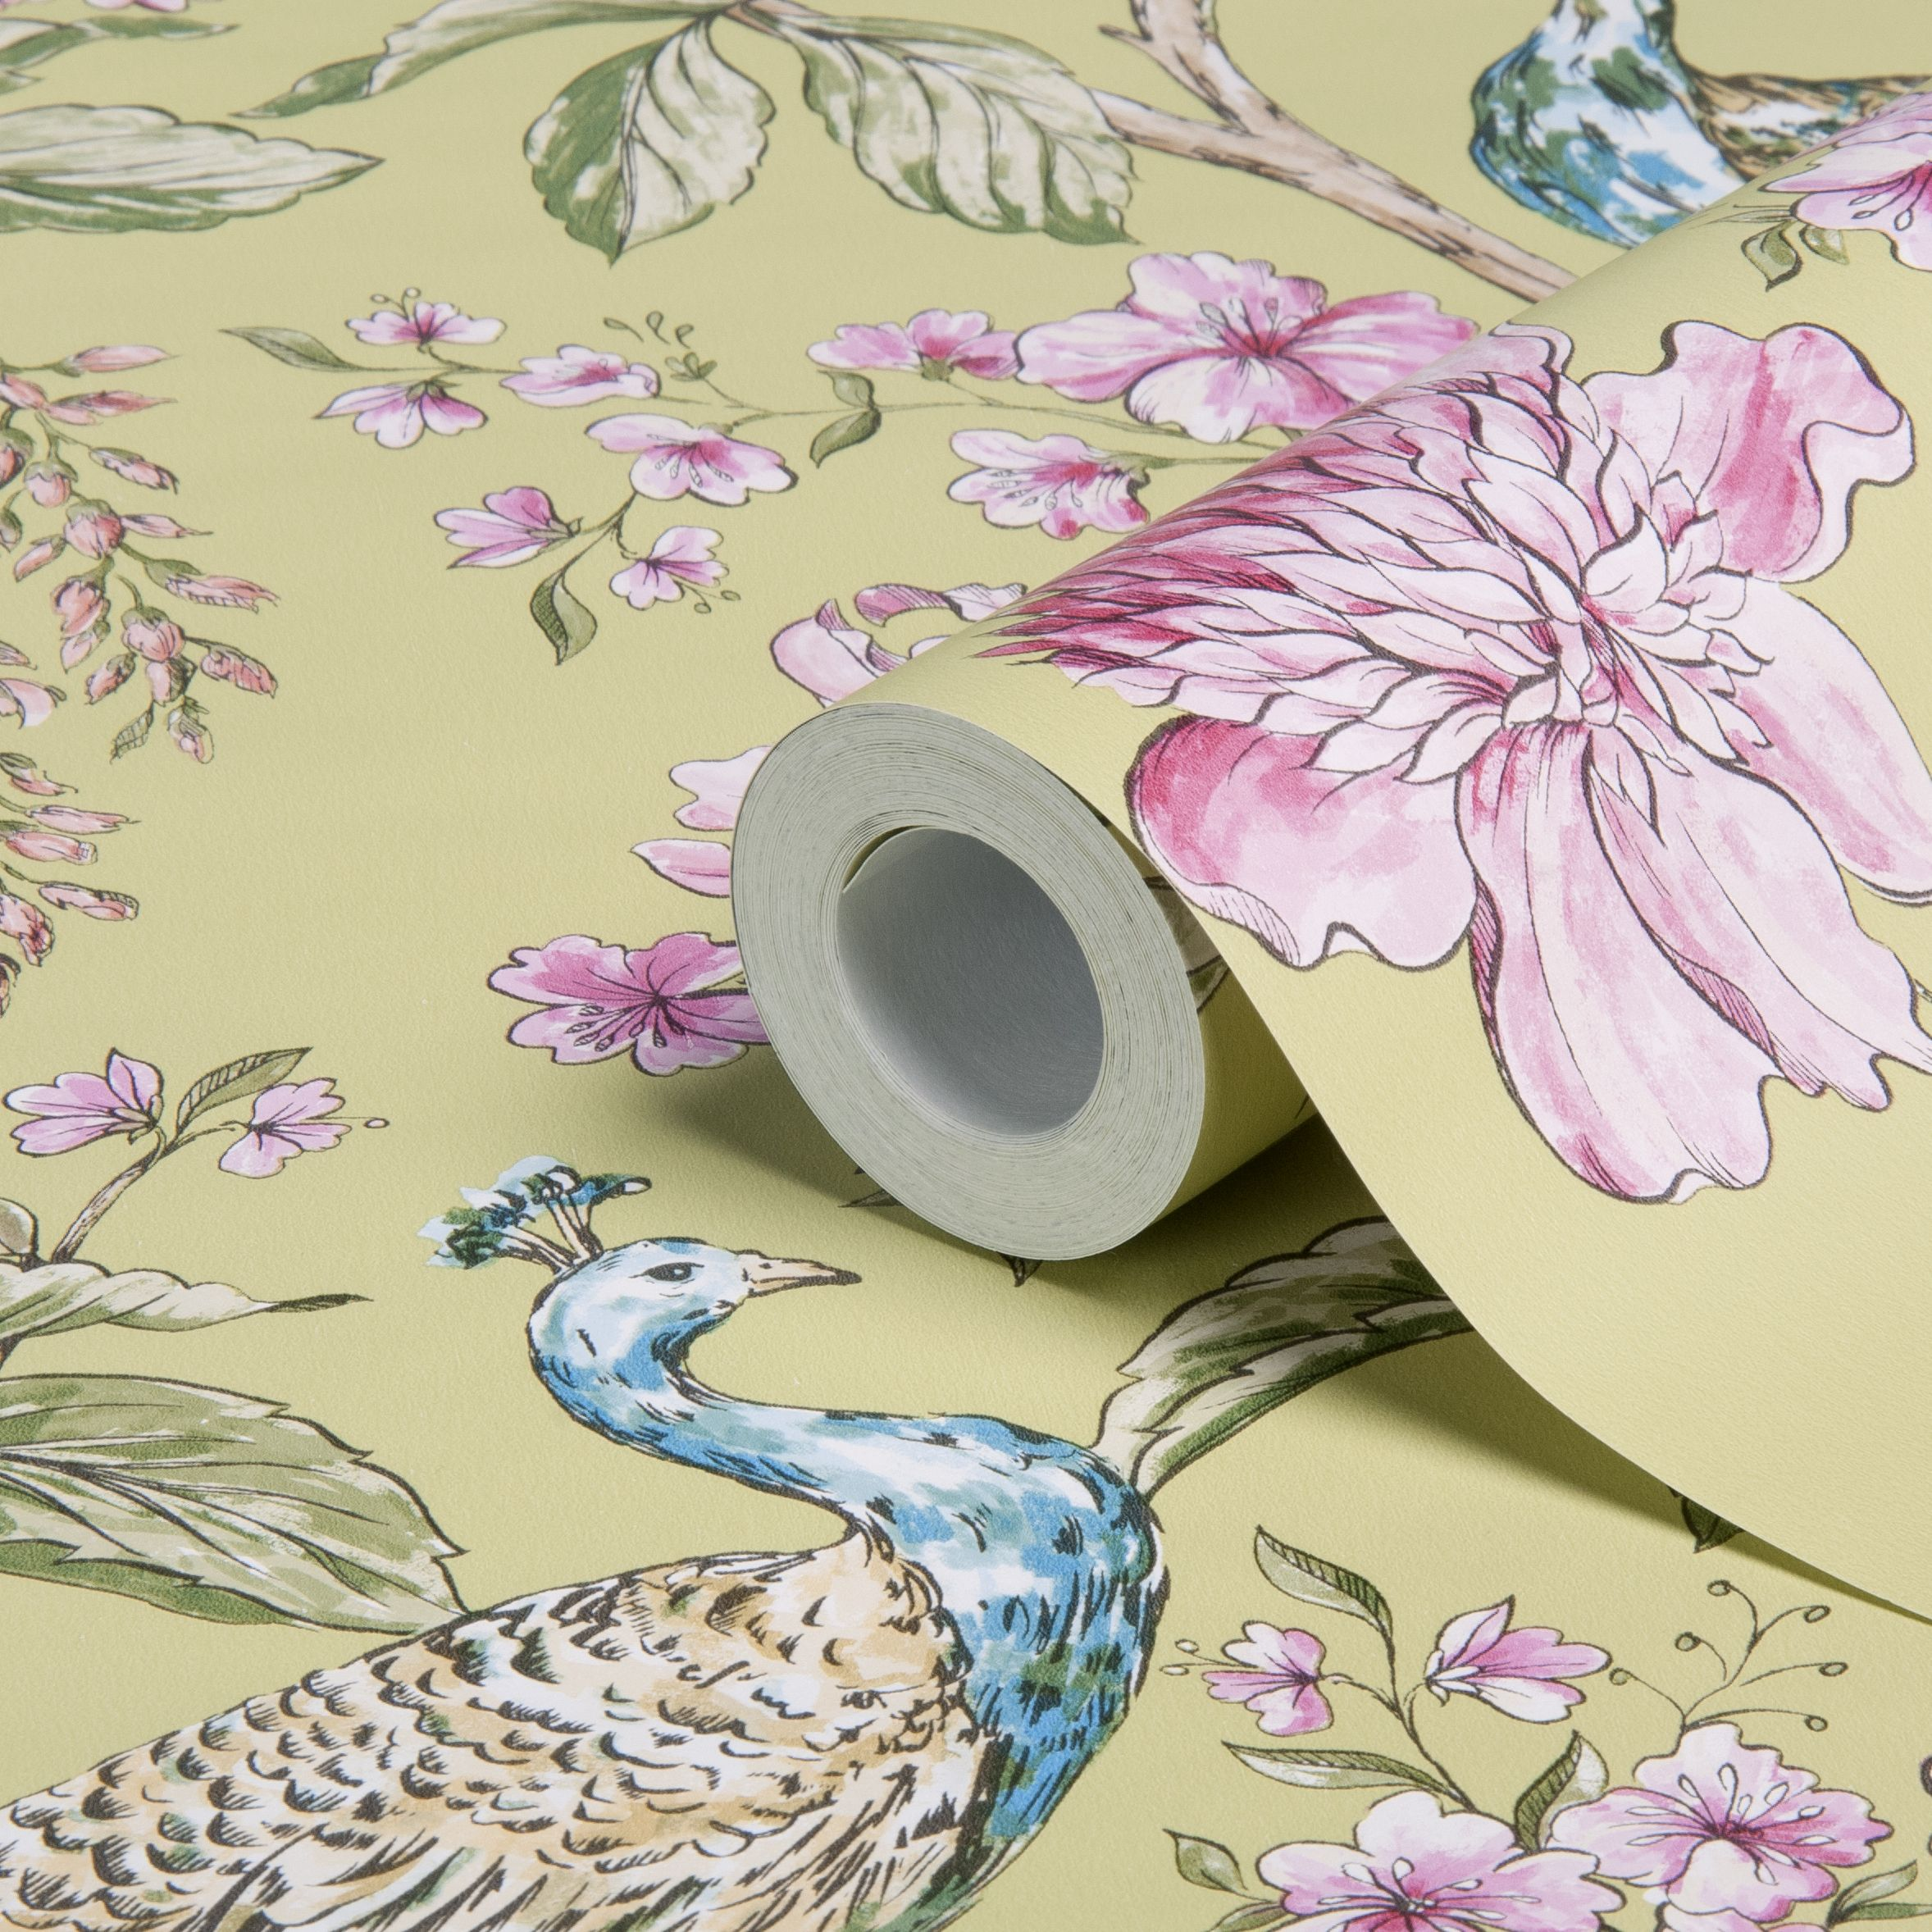 Diy At B Q: Sophie Conran Hibiscus Citrus Peacock Floral Wallpaper